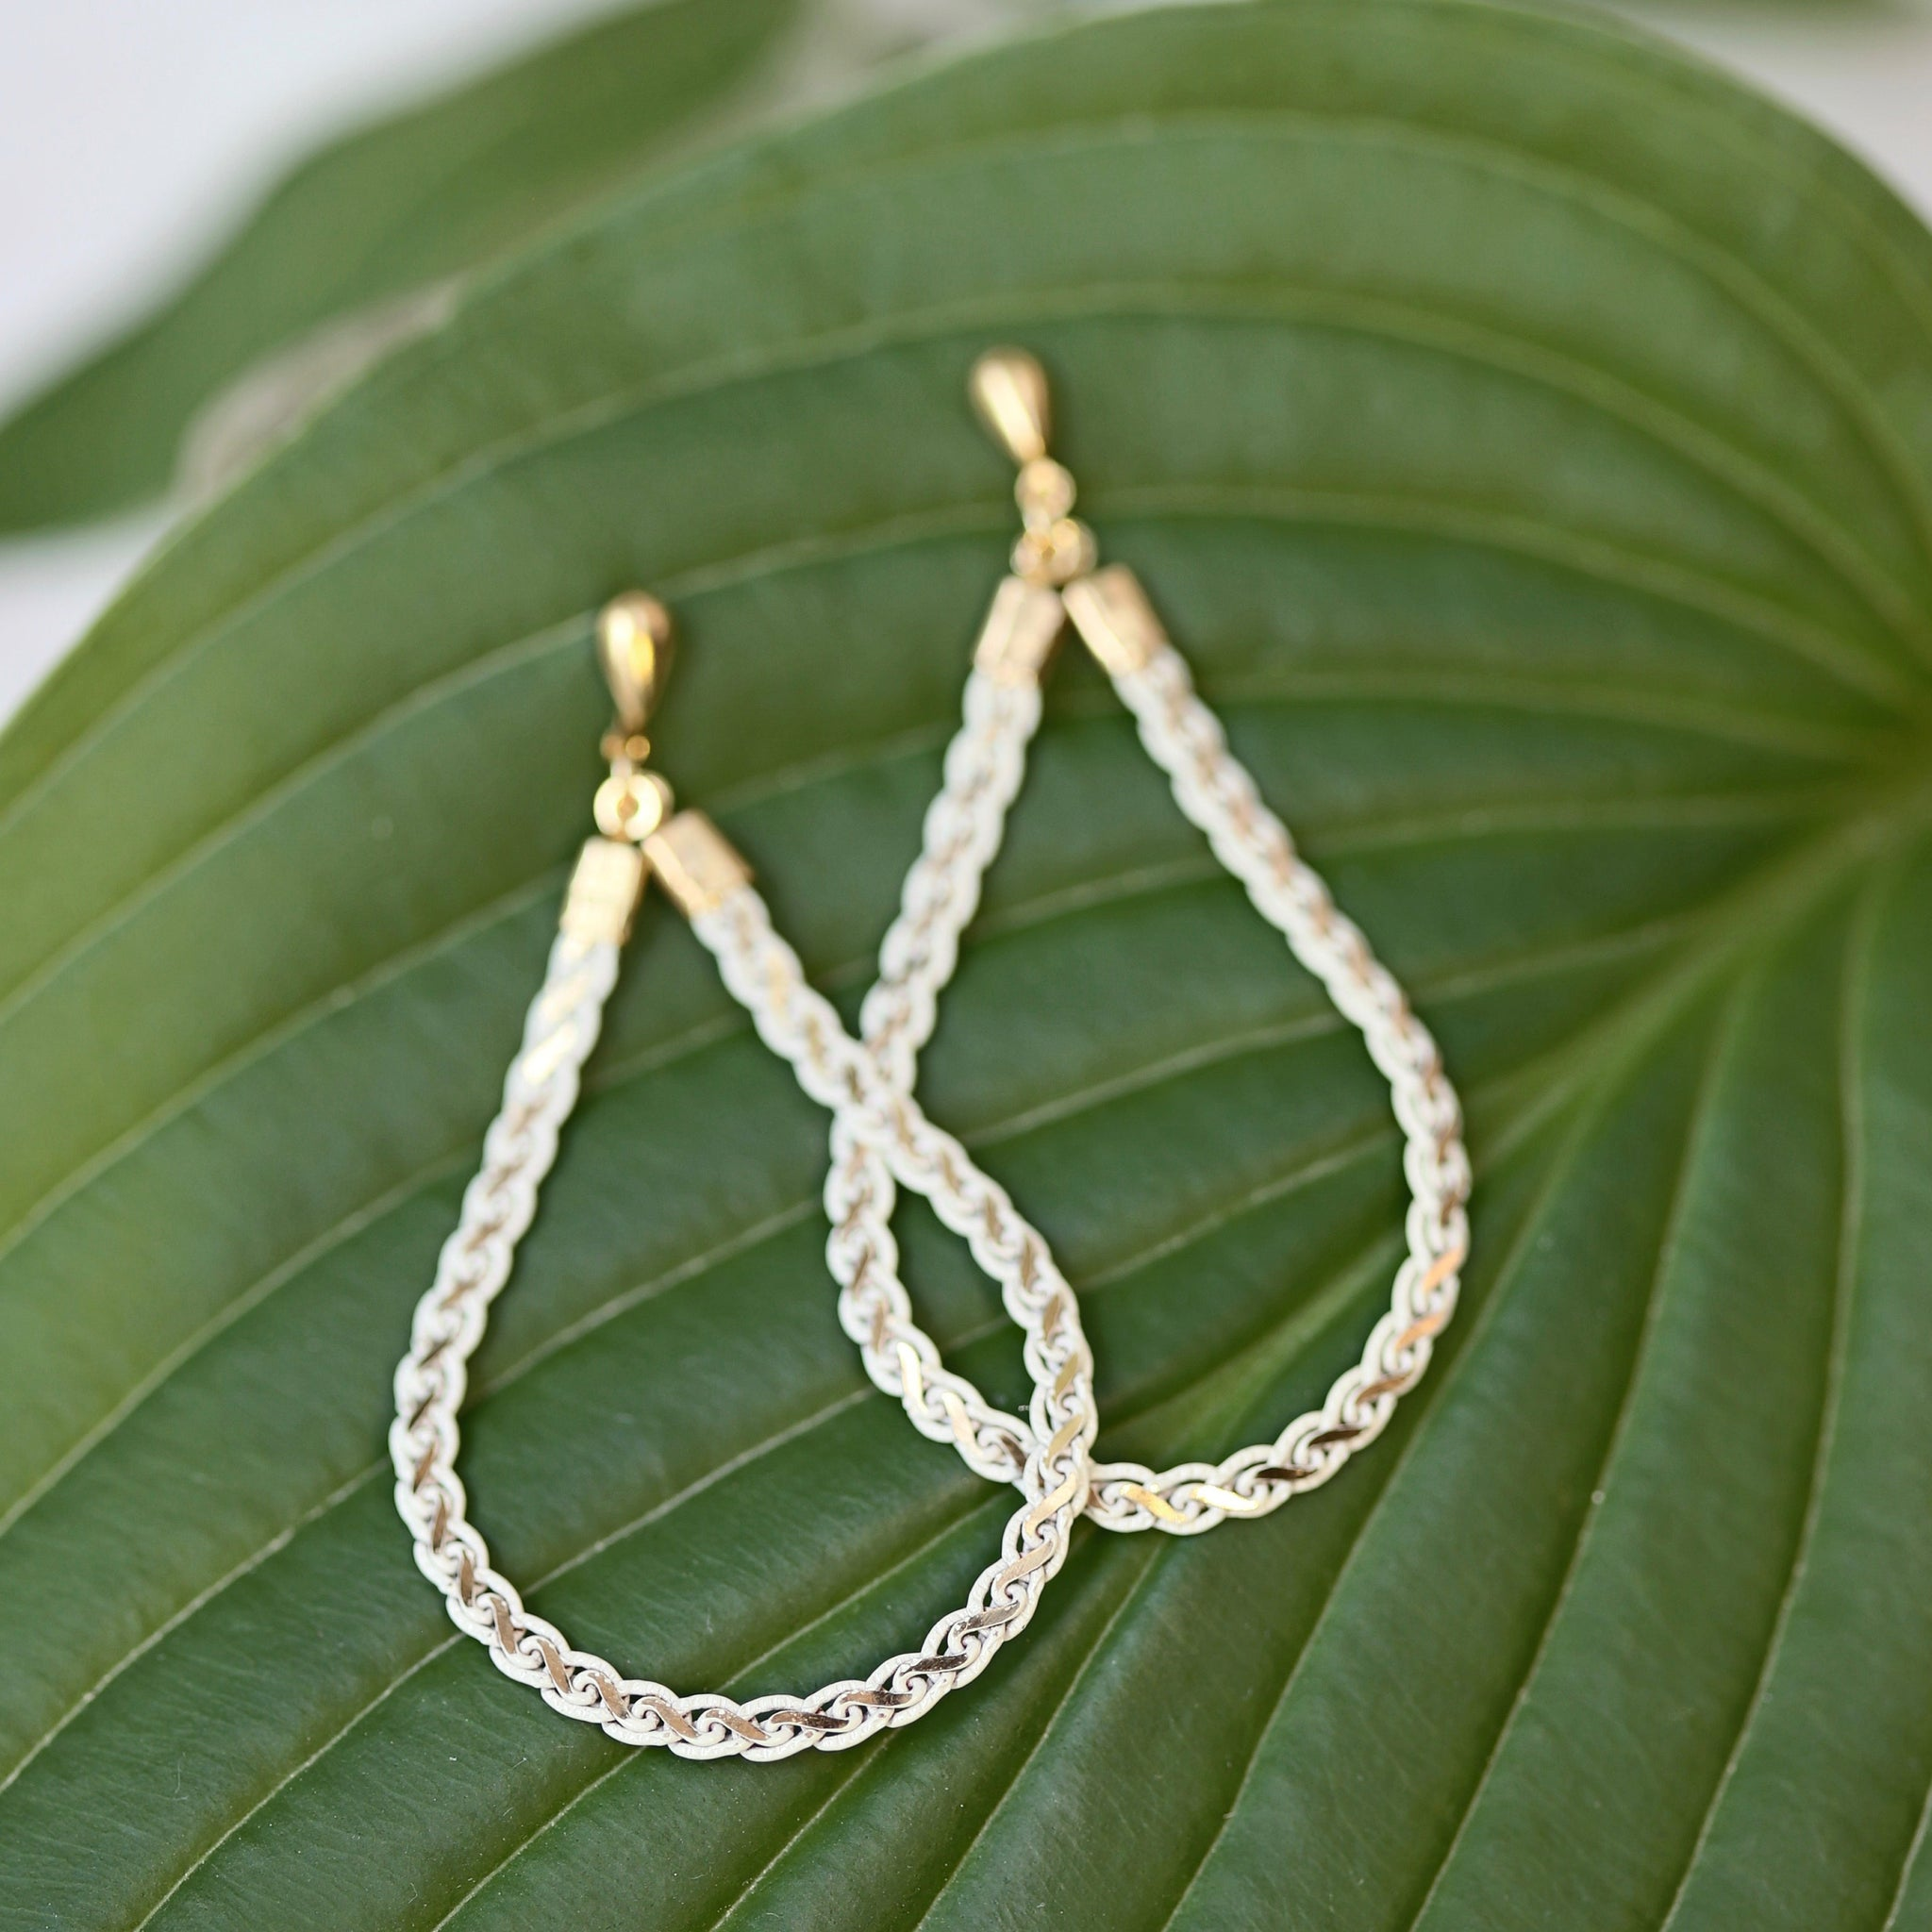 Teardrop Loop Earrings - Gold Posts / Woven Metal Loop Earring